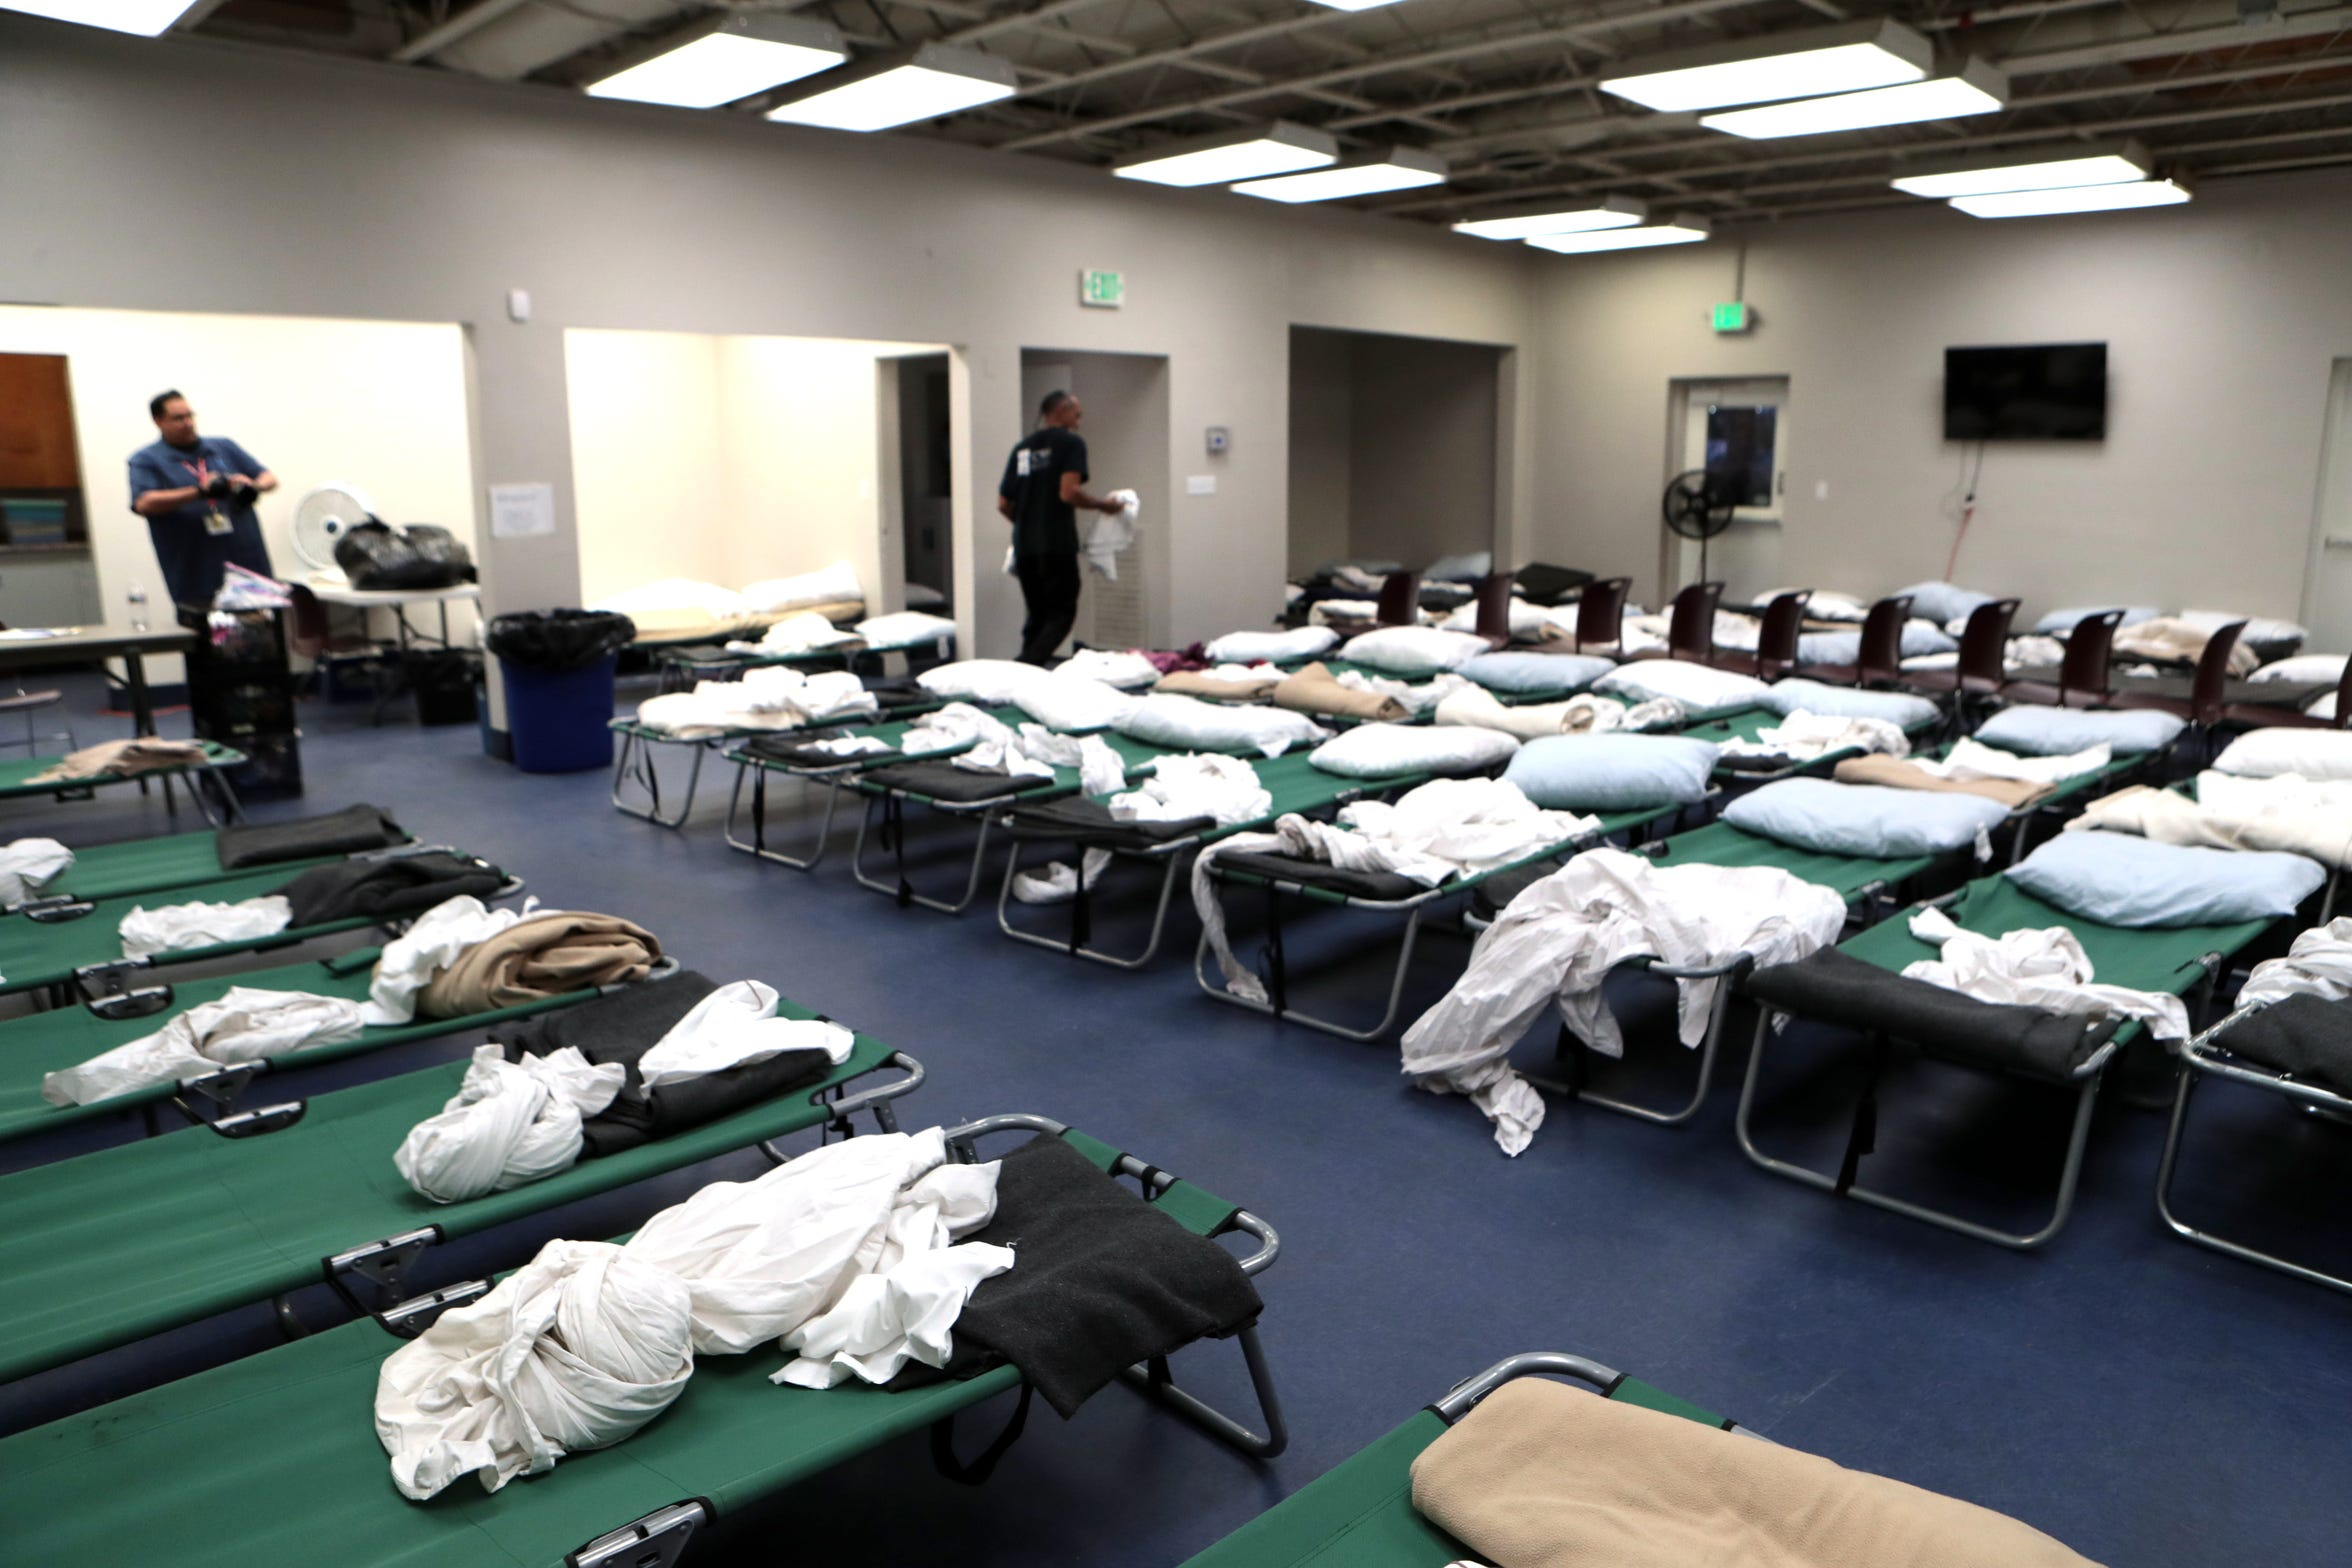 Coachella Valley Rescue Mission began operating an emergency overnight shelter at the former Boxing Club in Palm Springs, Calif., in July of 2019. The doors open at 7pm. Women and people with physical disabilities are allowed in first.